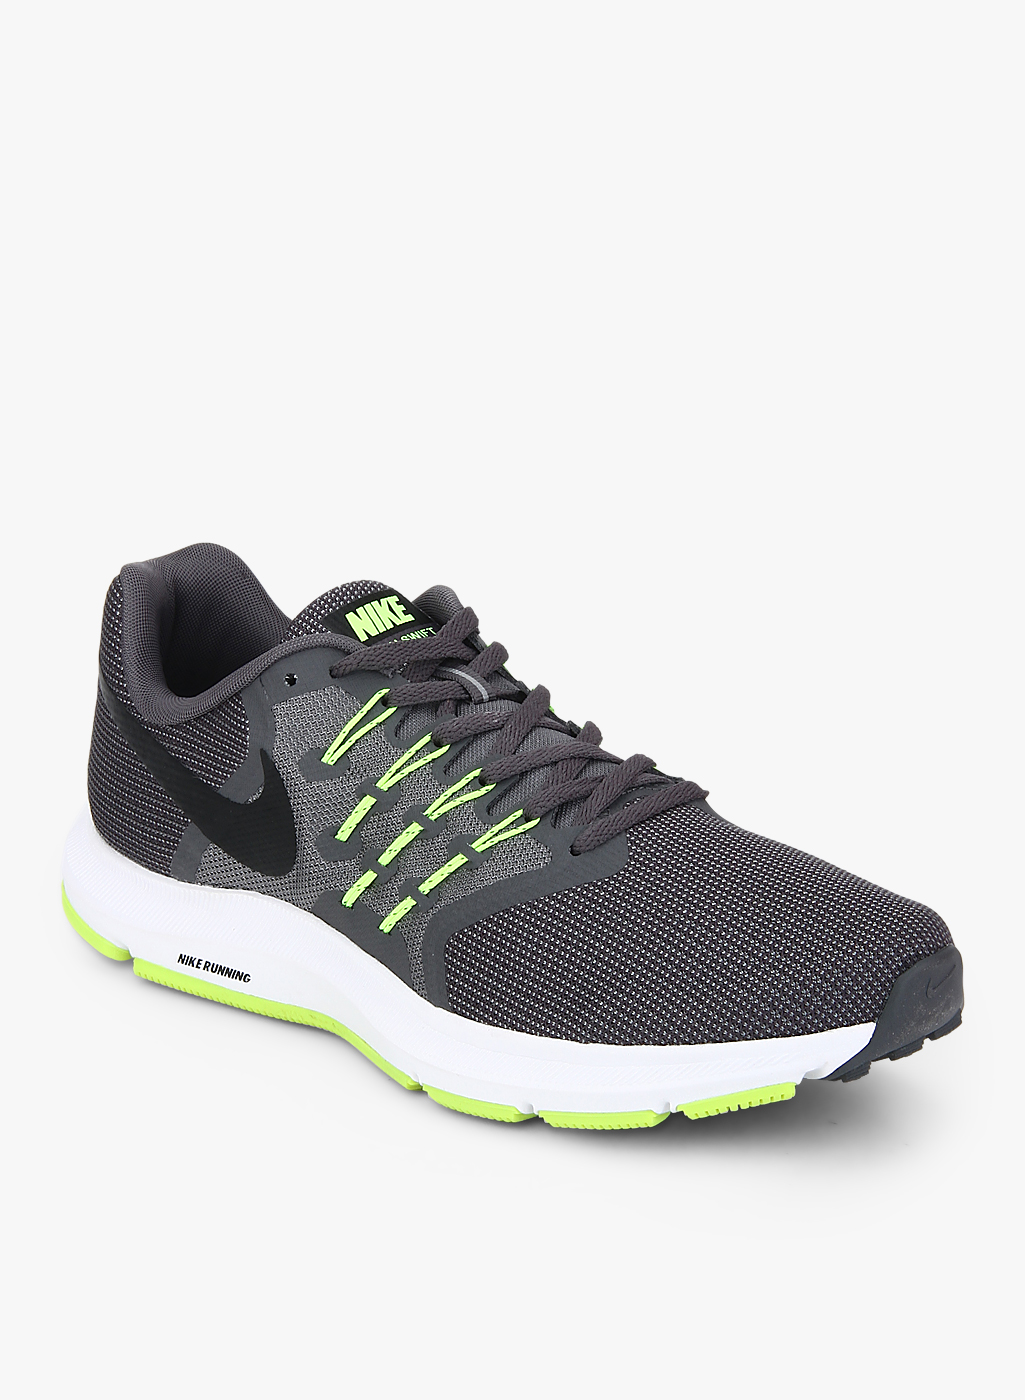 3cc638aaedc13 Nike Running Shoes   Nike Sneakers Online at Best Prices ...